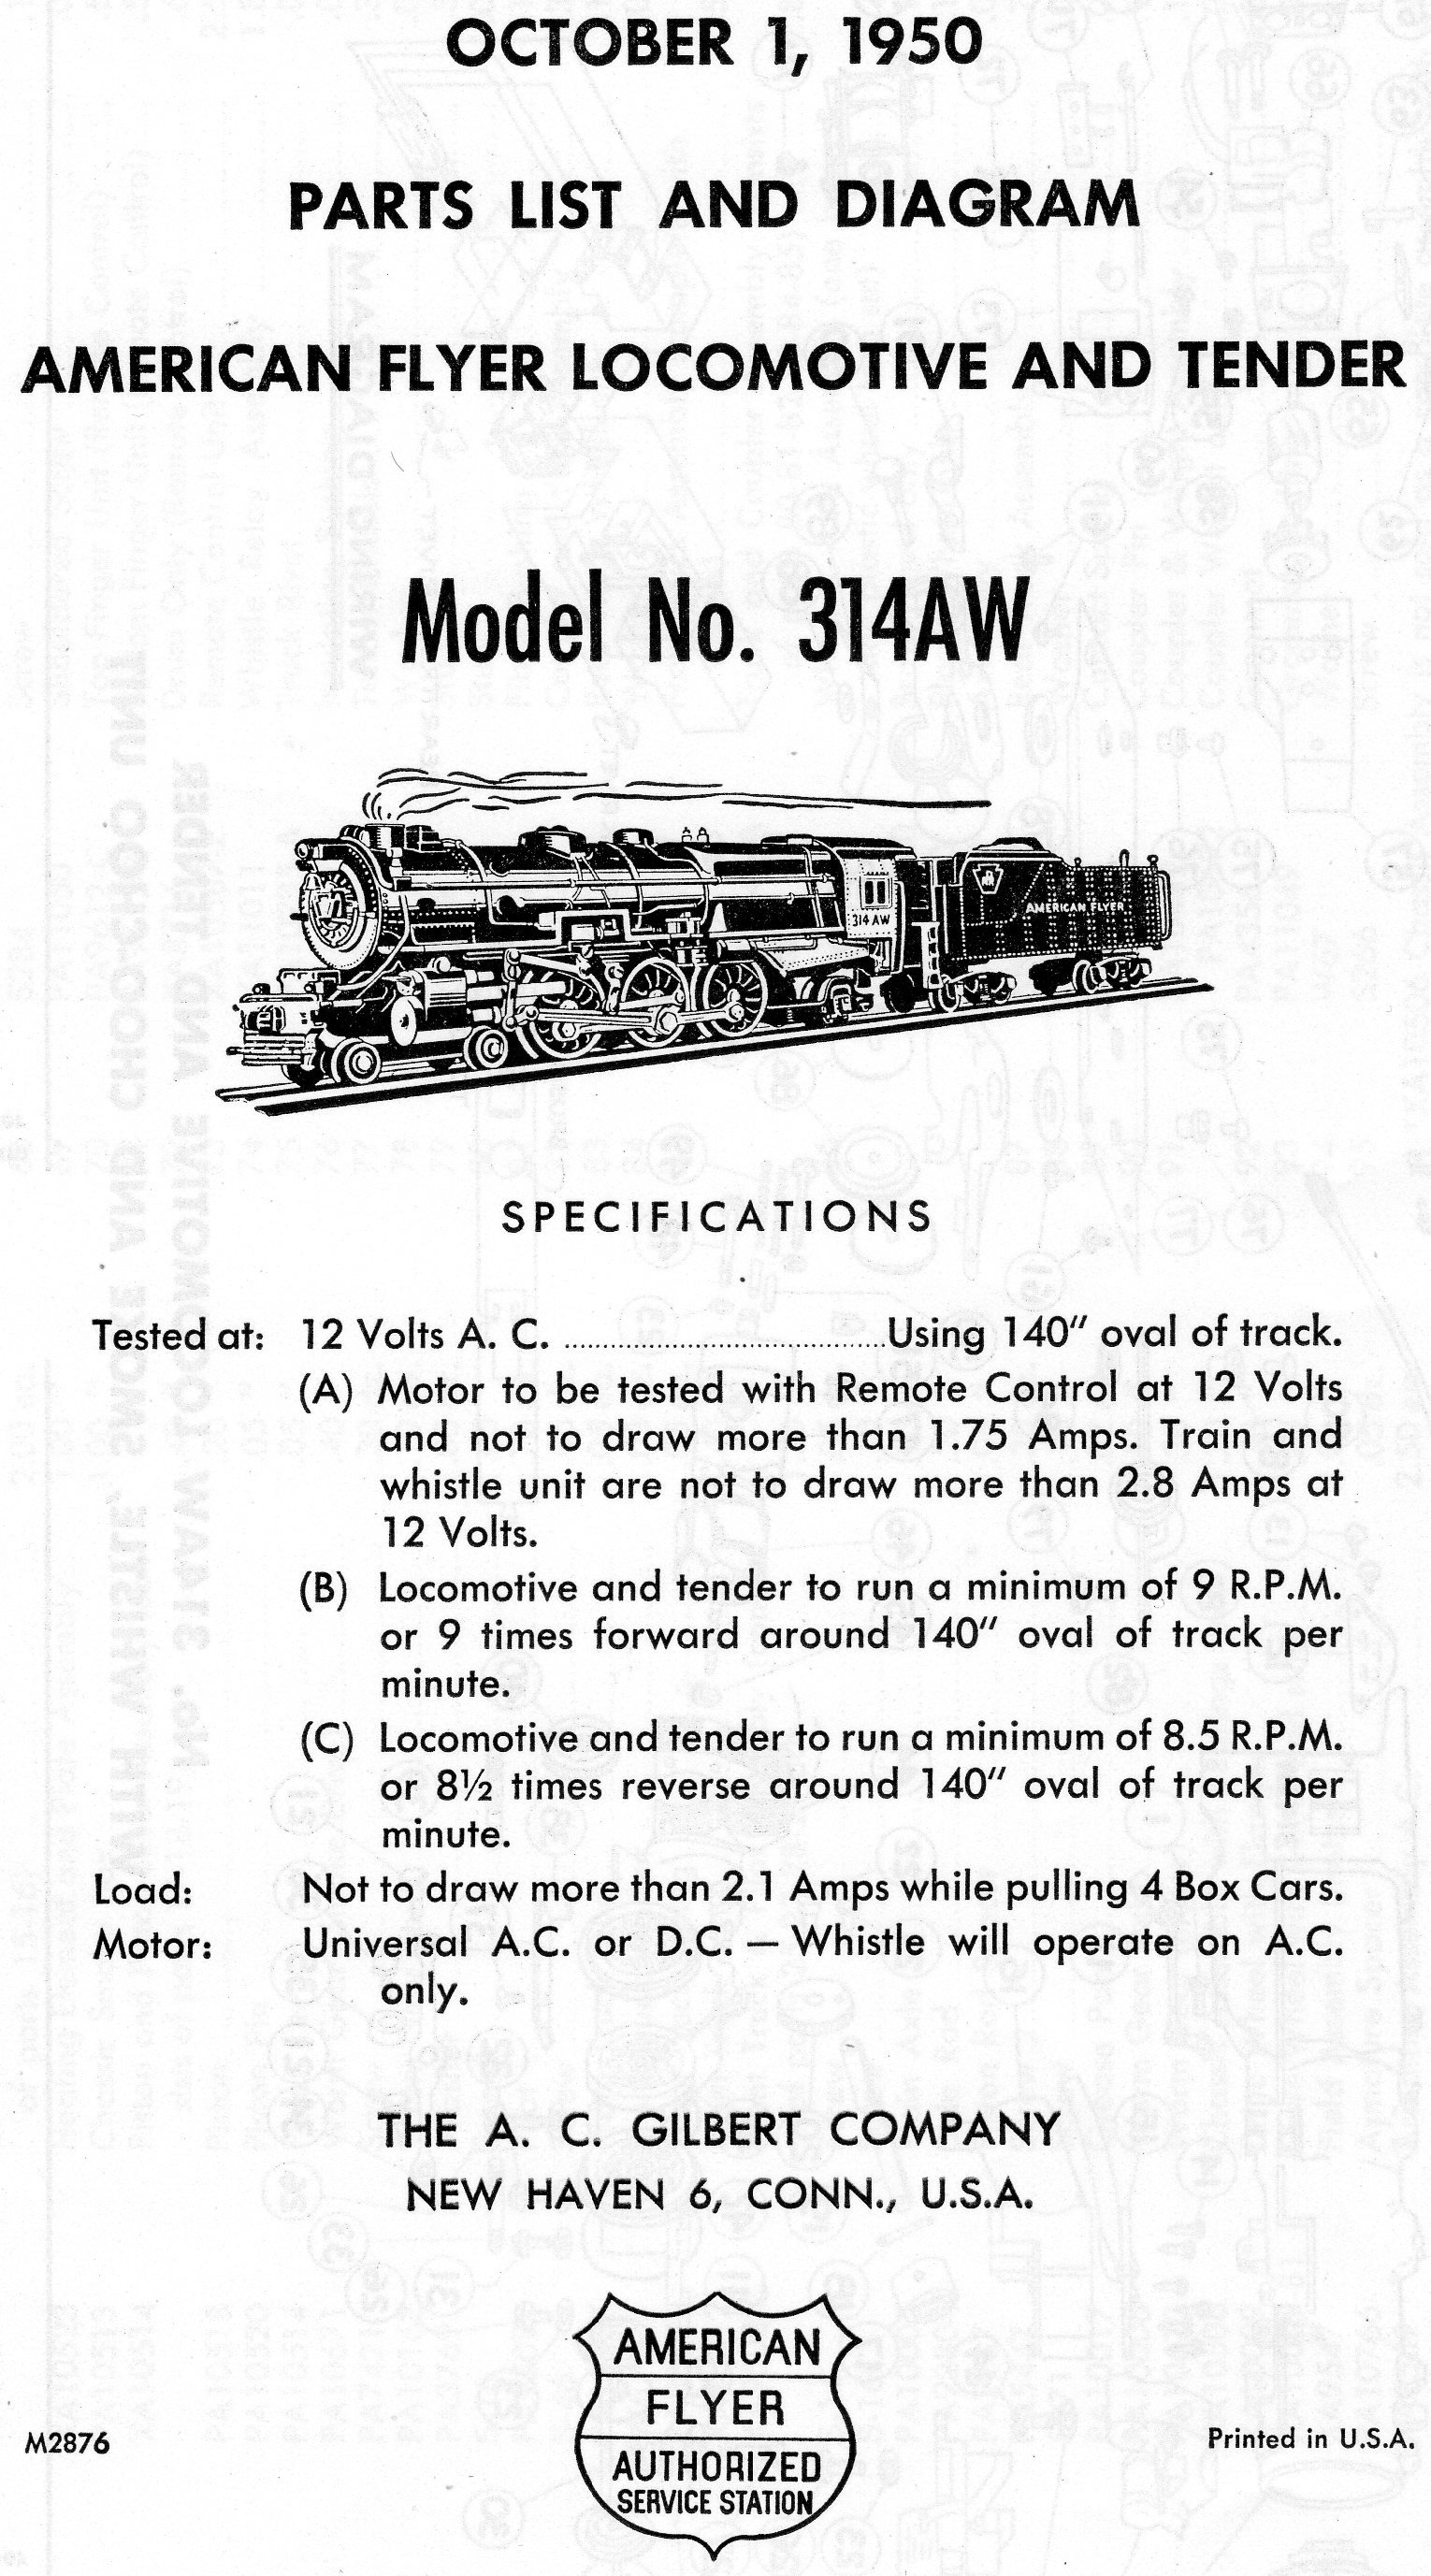 American Flyer Locomotive & Tender 314AW Parts List and Diagram - Page 1